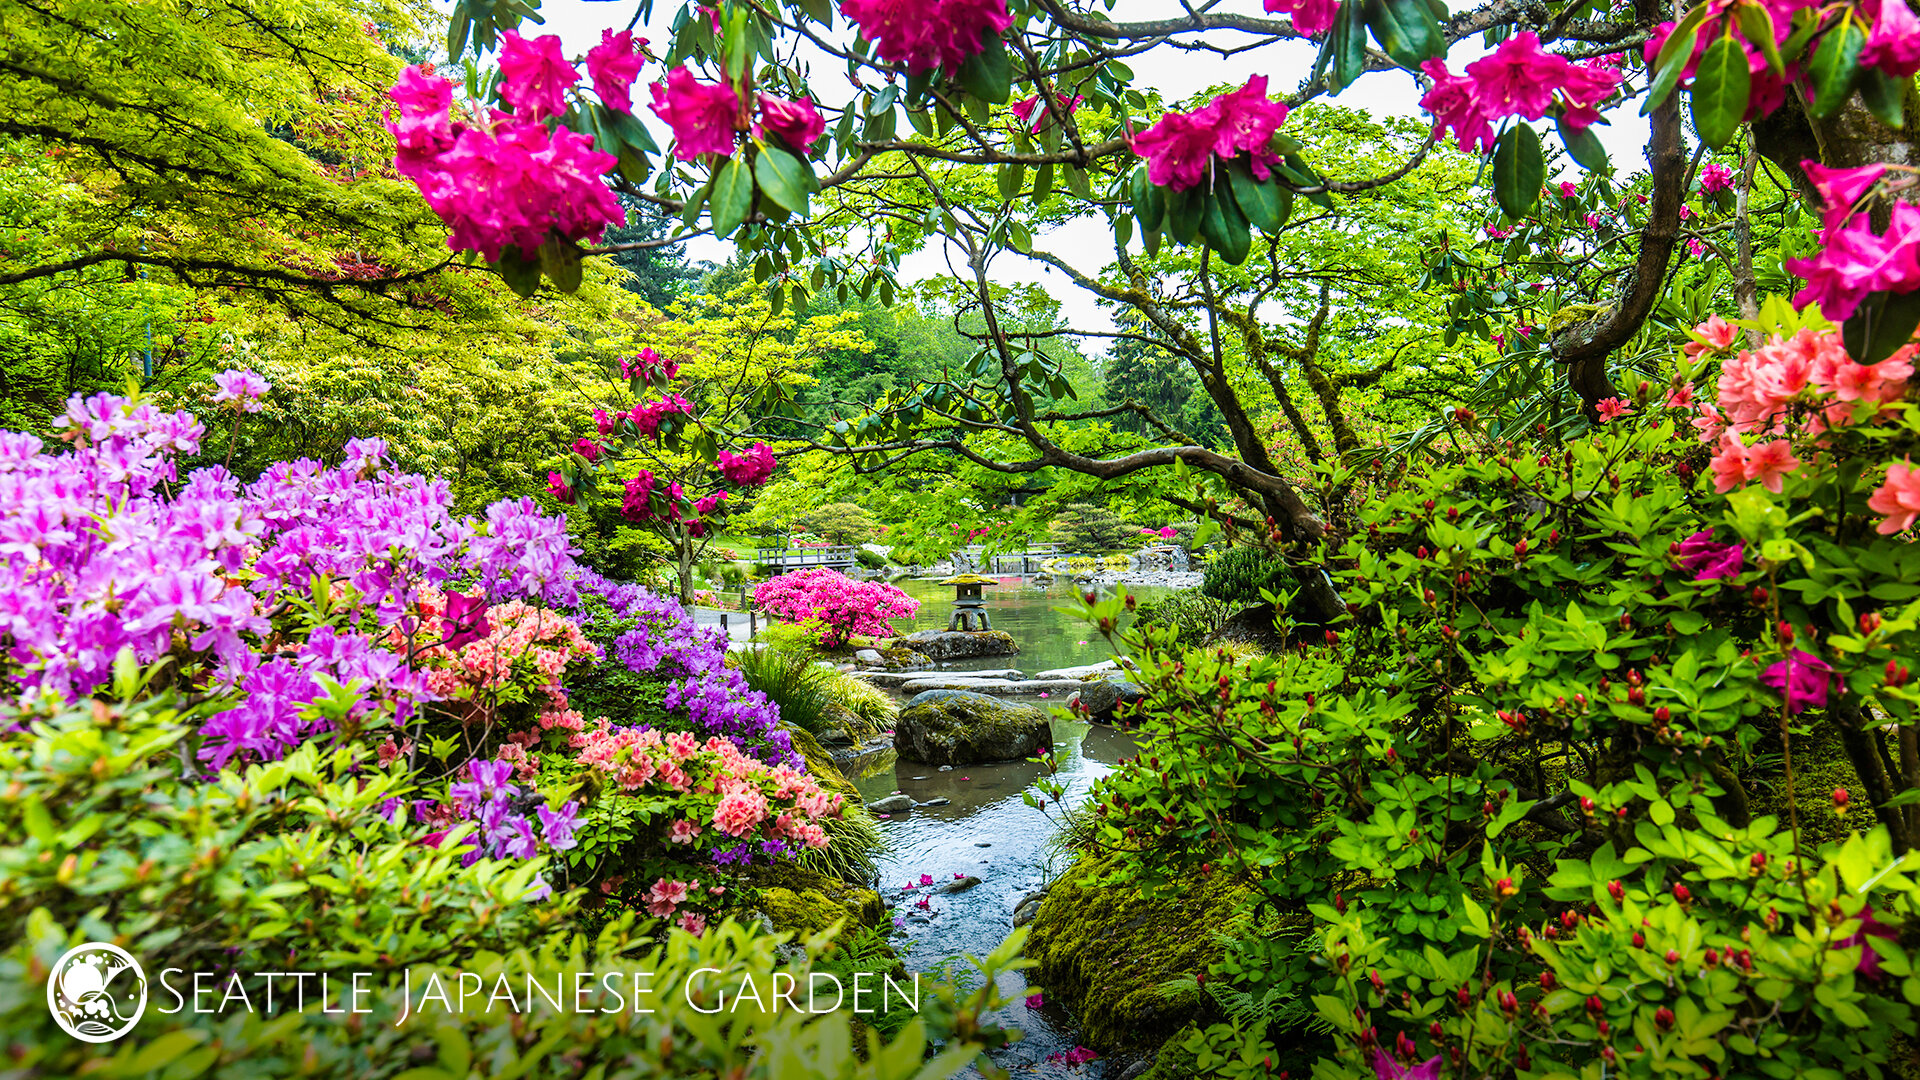 Seattle Japanese Garden Backgrounds Now Available For Video Conferences Seattle Japanese Garden